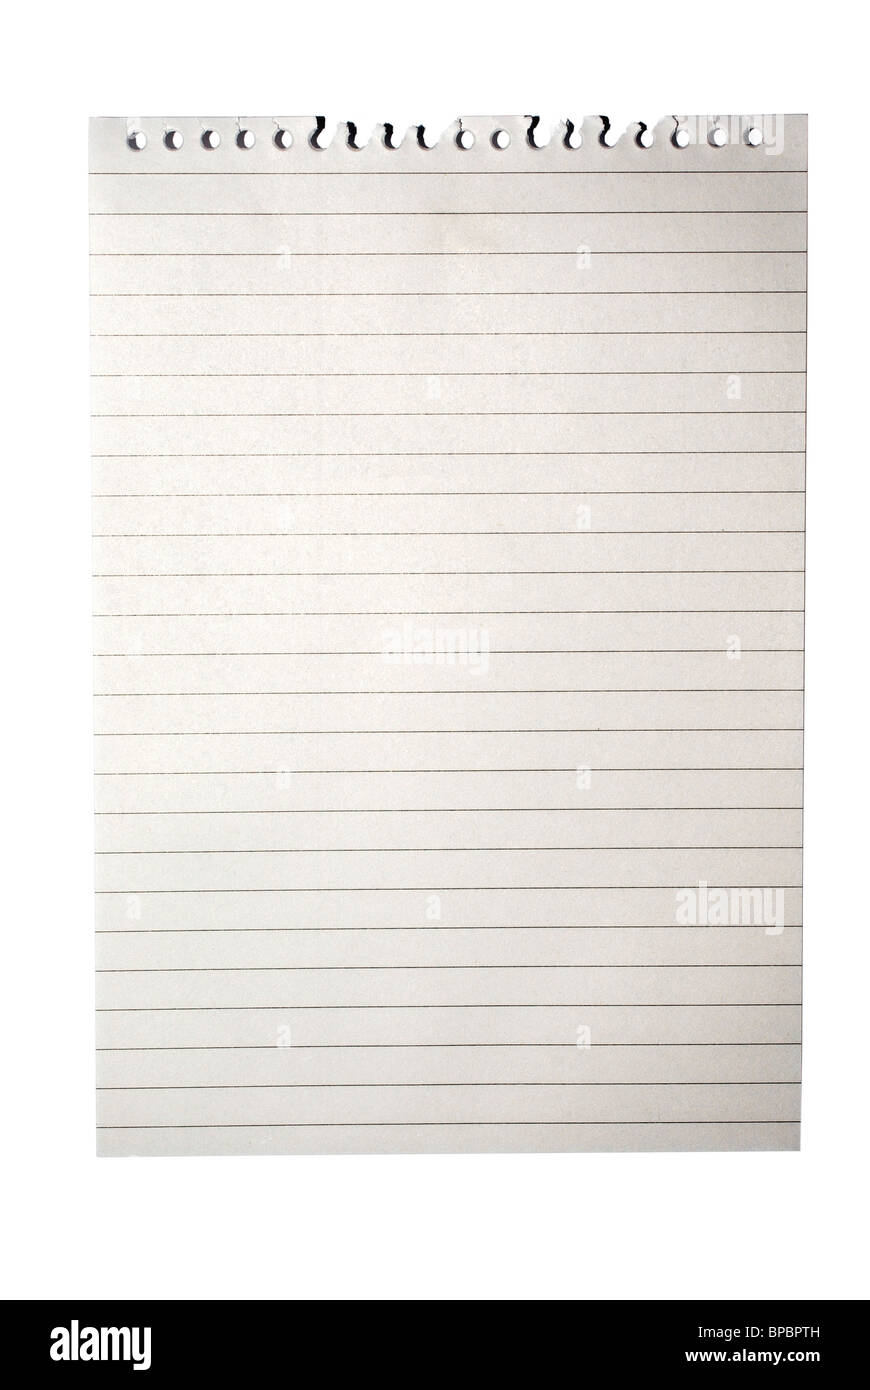 blank note paper from notebook with lines isolated on white with